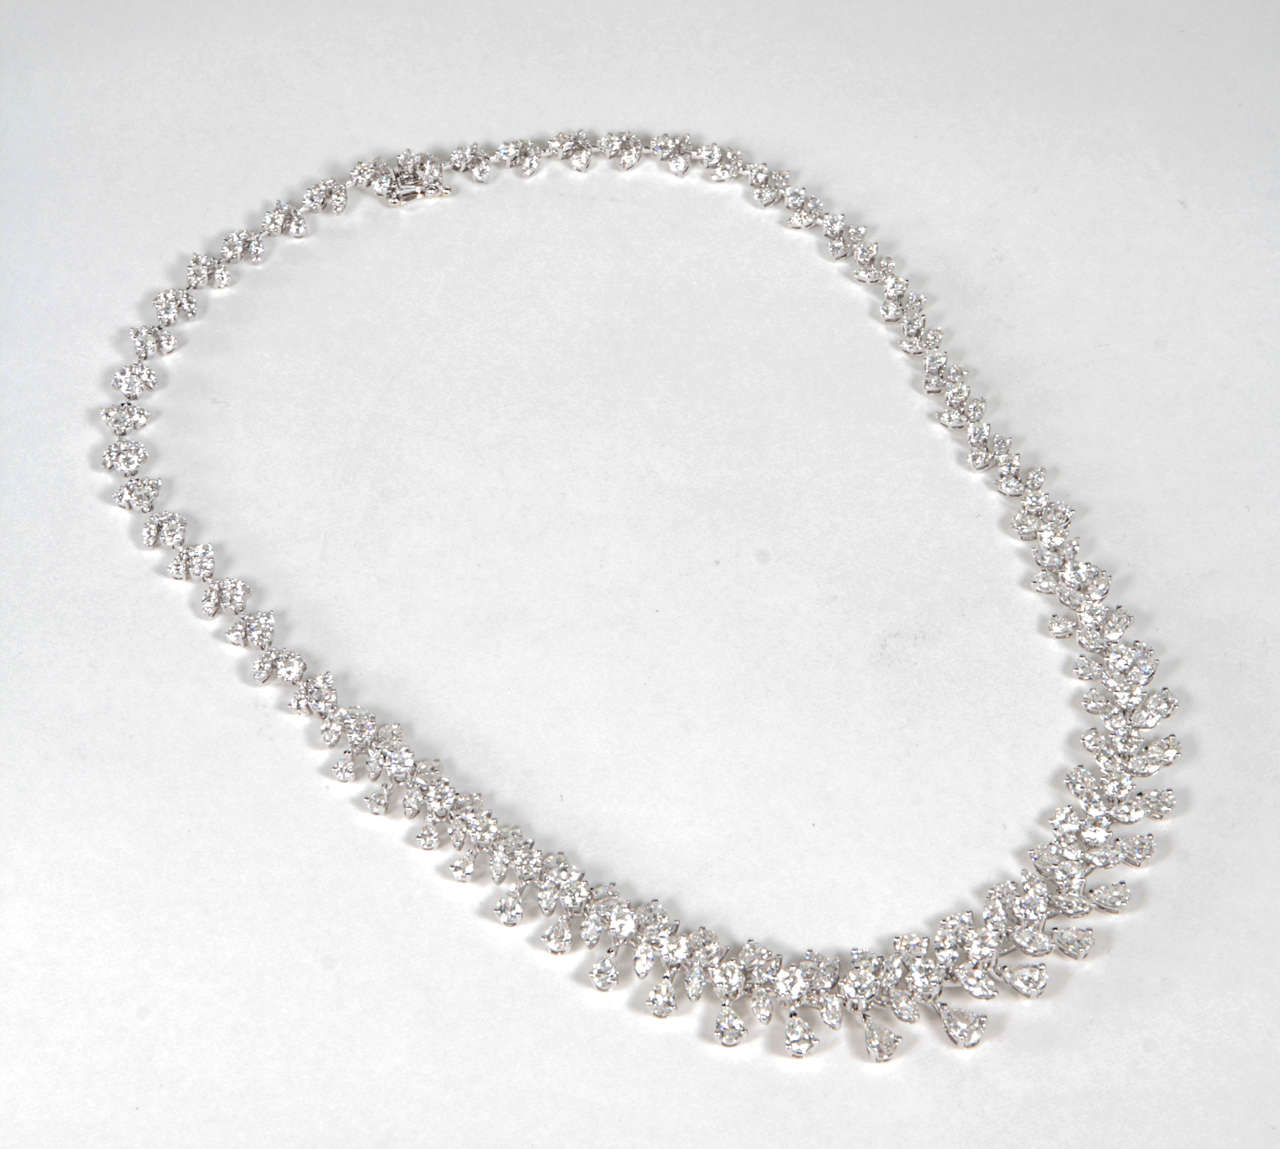 Classic Diamond Wreath Necklace In Excellent Condition For Sale In New York, NY